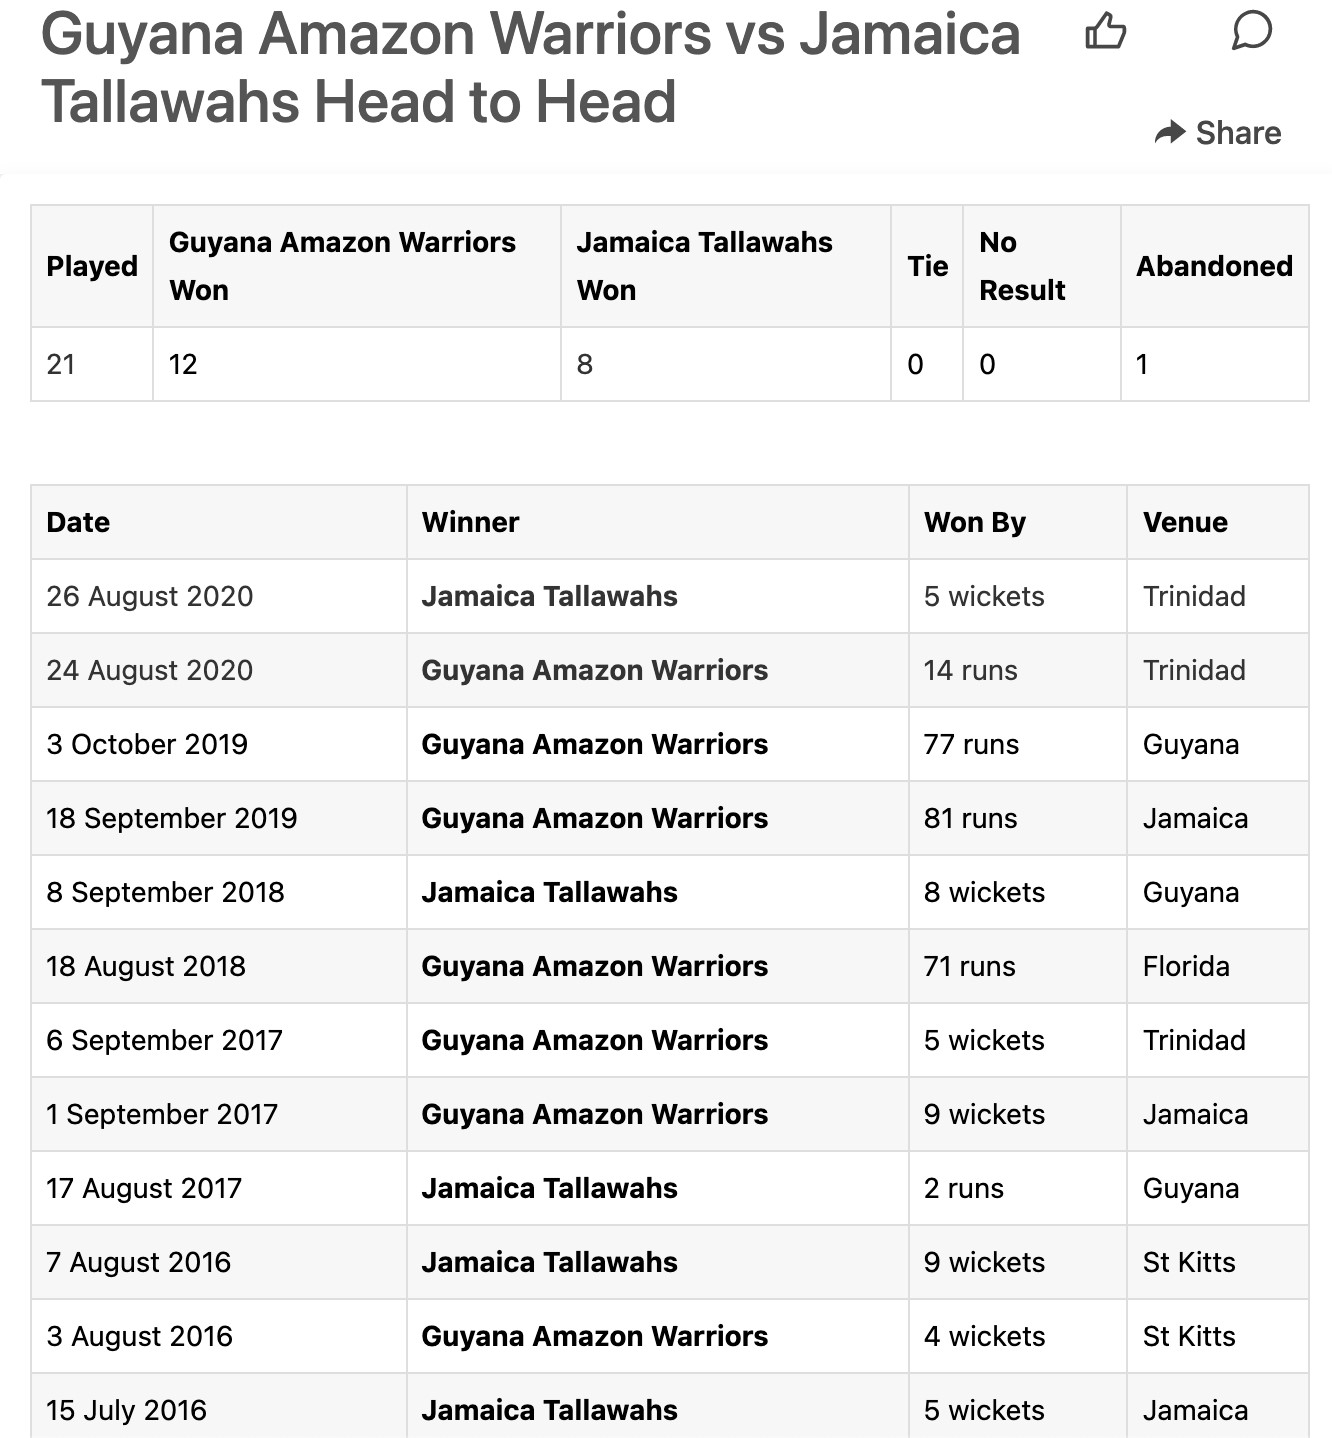 The Guyana Amazon Warriors meet with the Jamaica Tallawahs in the 29th match of the Caribbean Premier League 2021 on September 12. Fans and neutrals expect a tough one between these two teams when they cross swords. Who will come out on top? The 29th match of the CPL 2021 will see the Guyana Amazon Warriors take on Jamaica Tallawahs. So far, the Amazon Warriors have two wins from their five CPL matches. After they succeeded against Trinbago, they were unable to keep their winning streak in the CPL. They met defeat when they crossed paths with the Saint Lucia Kings. With just 98 runs, they lost out to the other team's 150 runs. Currently, Guyana Amazon Warriors holds fourth position on the CPL table, and the team will want to strengthen their standing or at least remain in the top four. Jamaica Tallawahs, on the other hand, are currently placed second from the bottom of the CPL table. They have won two games in their last five matches. This team remains hopeful and will be giving their best performance in their next game. With all-rounders like Andre Russell, Carlos Brathwaite, and Imad Wasim, Jamaica Tallawahs could well spring up surprises on the field. Jamaica Tallawahs last game didn't go so well, and the team will want to banish those memories when they meet with the Guyana Amazon Warriors on September 12. Source: https://www.sportskeeda.com/cricket/guyana-amazon-warriors-vs-jamaica-tallawahs-head-to-head Match Predictions and Betting Odds The Guyana Amazon Warriors and Jamaica Tallawahs face-off is highly anticipated. Our match 29 prediction will be slightly in favour of the Tallawahs. The team has been consistent, and they have a strong lineup. We expect Imad Wasim to bring his A-game. However, the result is not a foregone conclusion yet, as the Warriors may step up their game when it matters most. Summary The GAW vs JT game would be an exciting game. Guayana lost to St Lucia Kings and has not been able to get a comeback. We are betting on Jamaica Tallawahs to